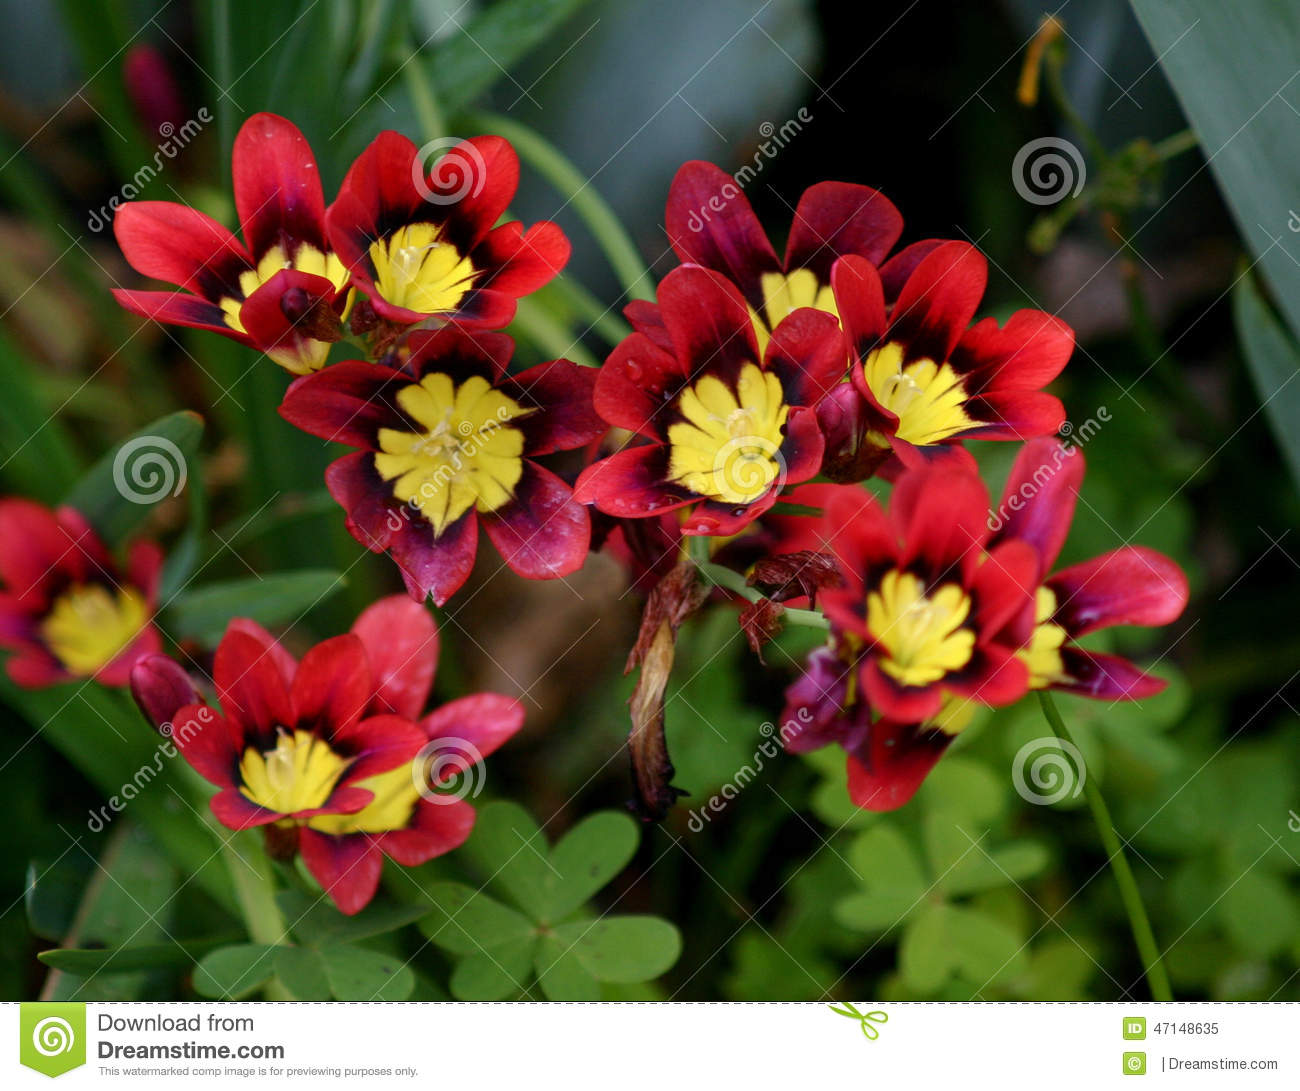 A group of red yellow and black flowers stock image image of a group of red yellow and black flowers mightylinksfo